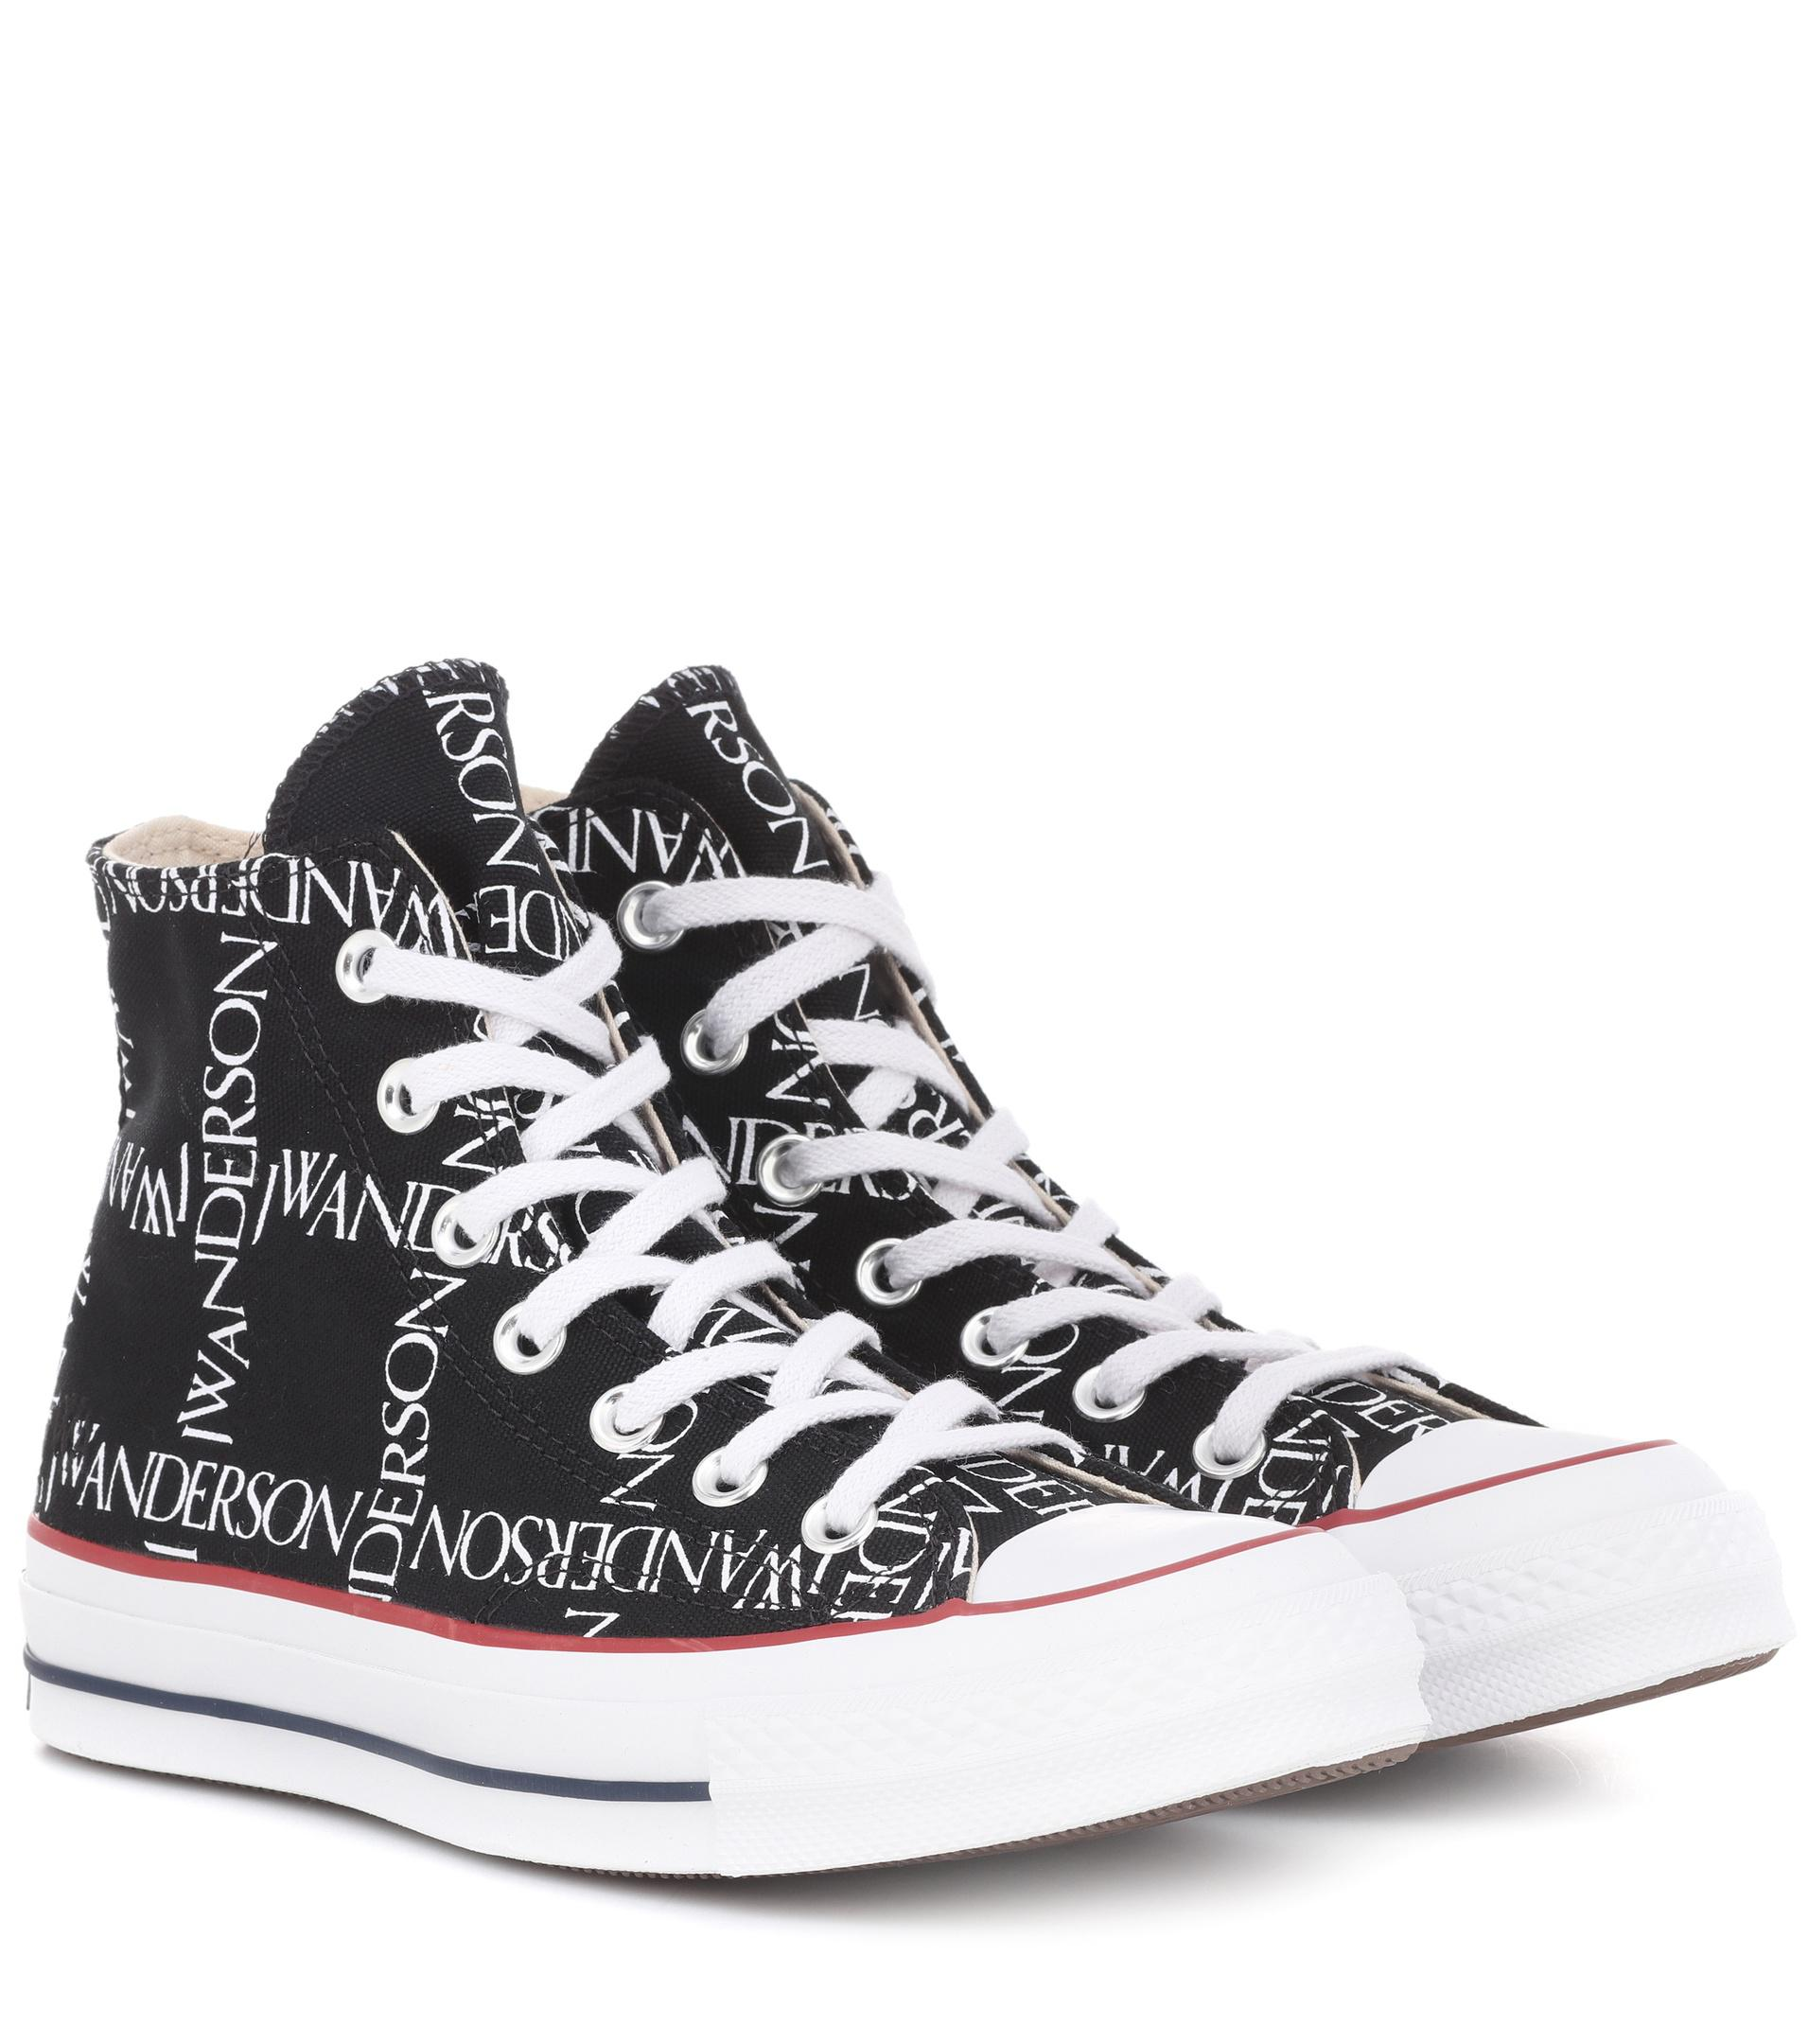 Lyst - J.W. Anderson X Converse Chuck 70 Logo-print Sneakers in Black 5d0a402b0